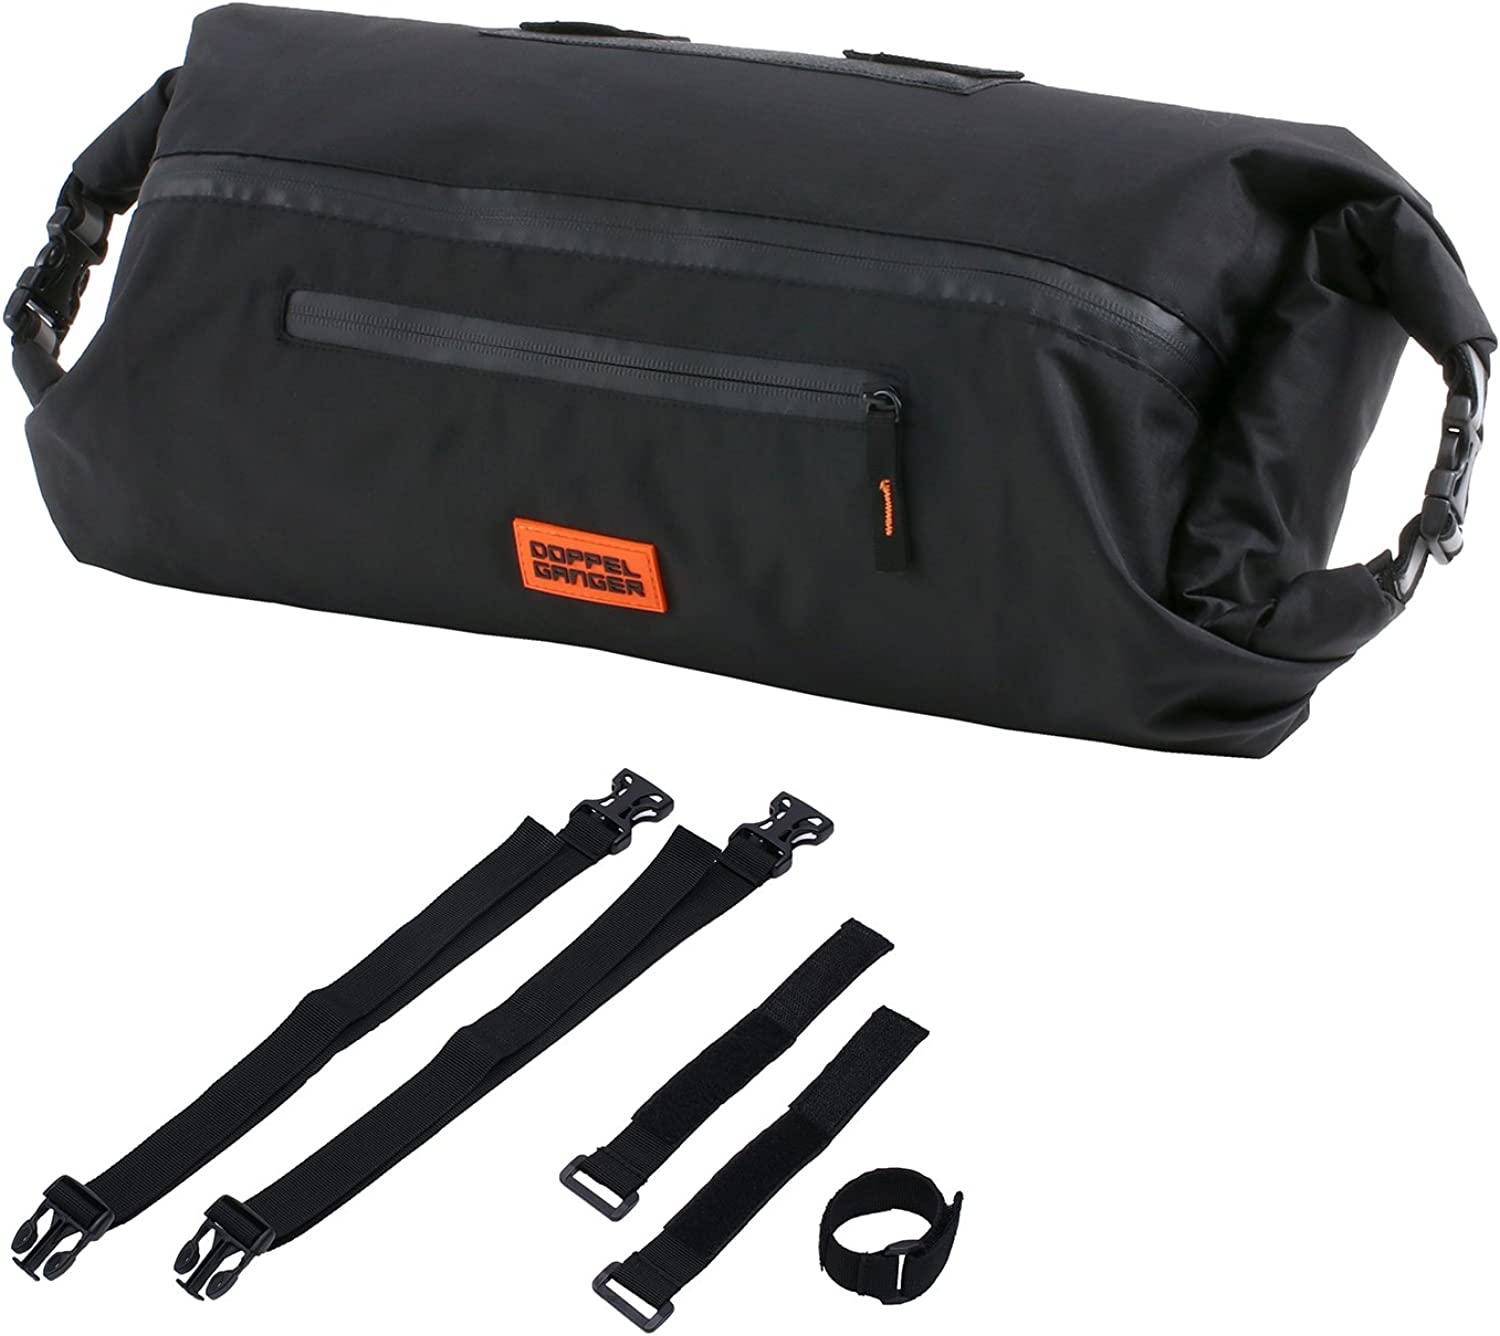 DOPPELGANGER (Dopperugyanga) wrap Handle Bar Bag [2-Room Easy and Organize Also Easy as Wrapping Cloth] Capacity 8L Mounted Belt with Packs Series DBF398-BK